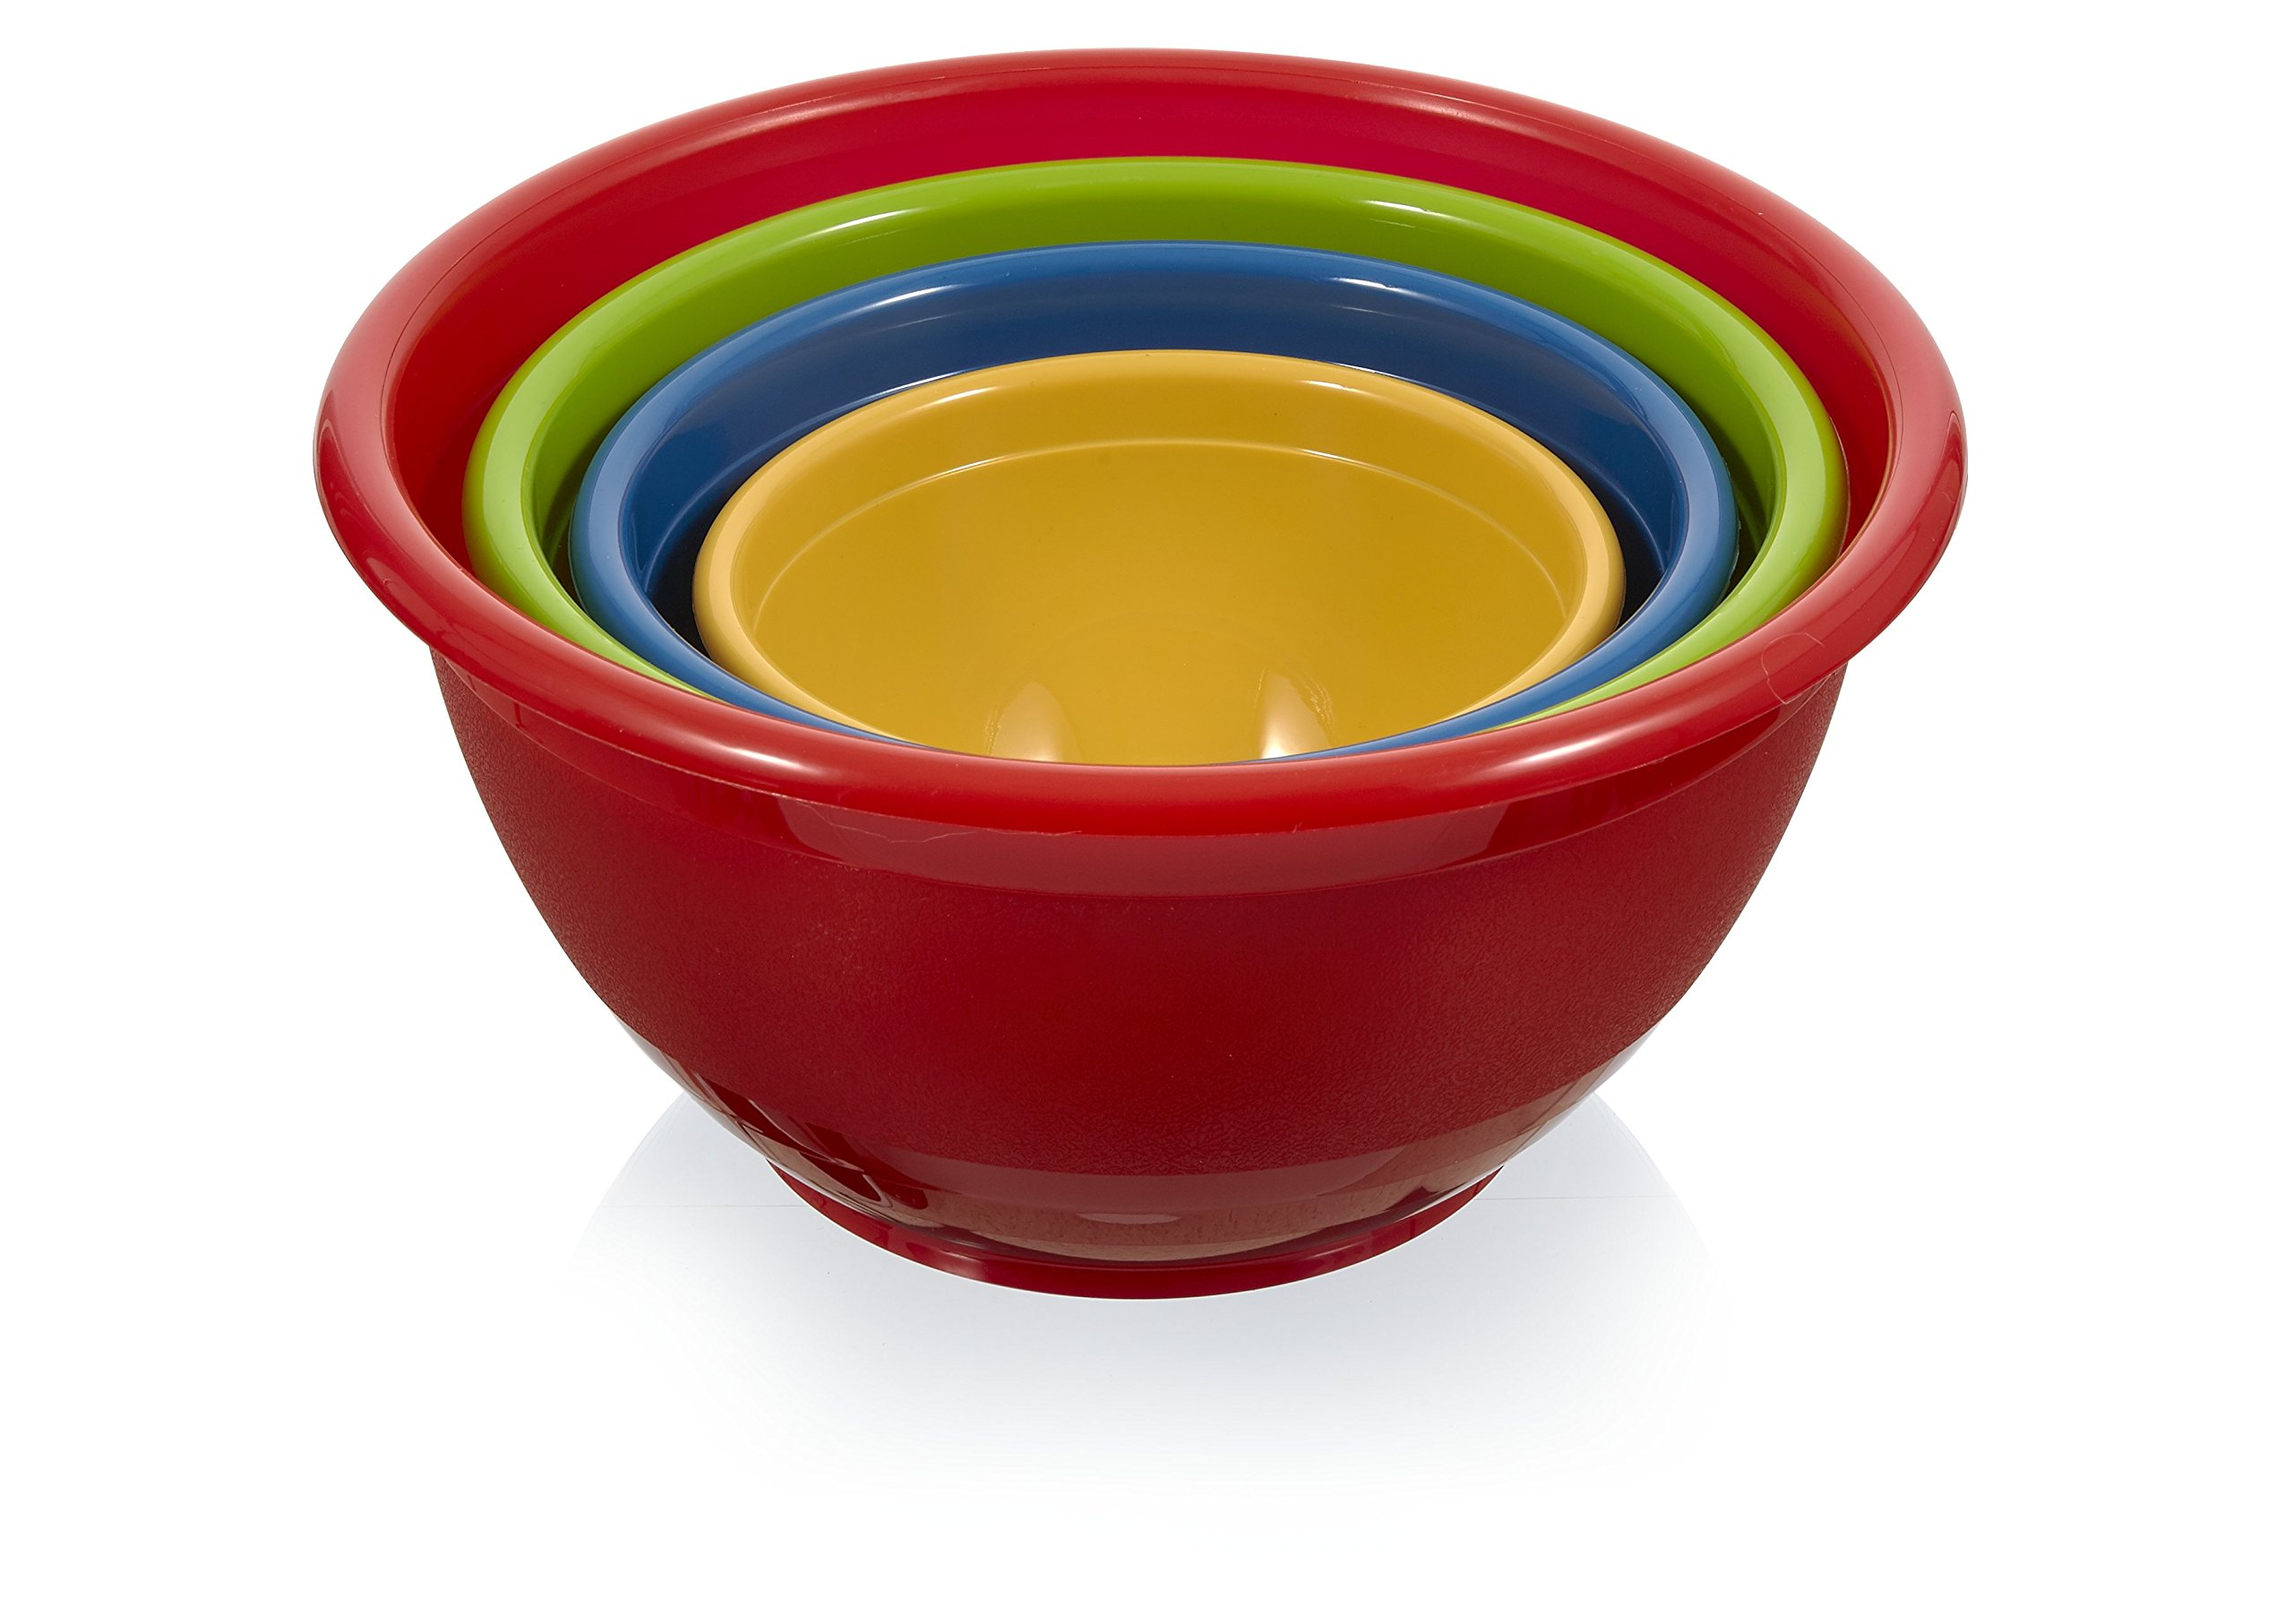 Arrow Home Products 00252 Mix and Serve Bowl Set, Assorted